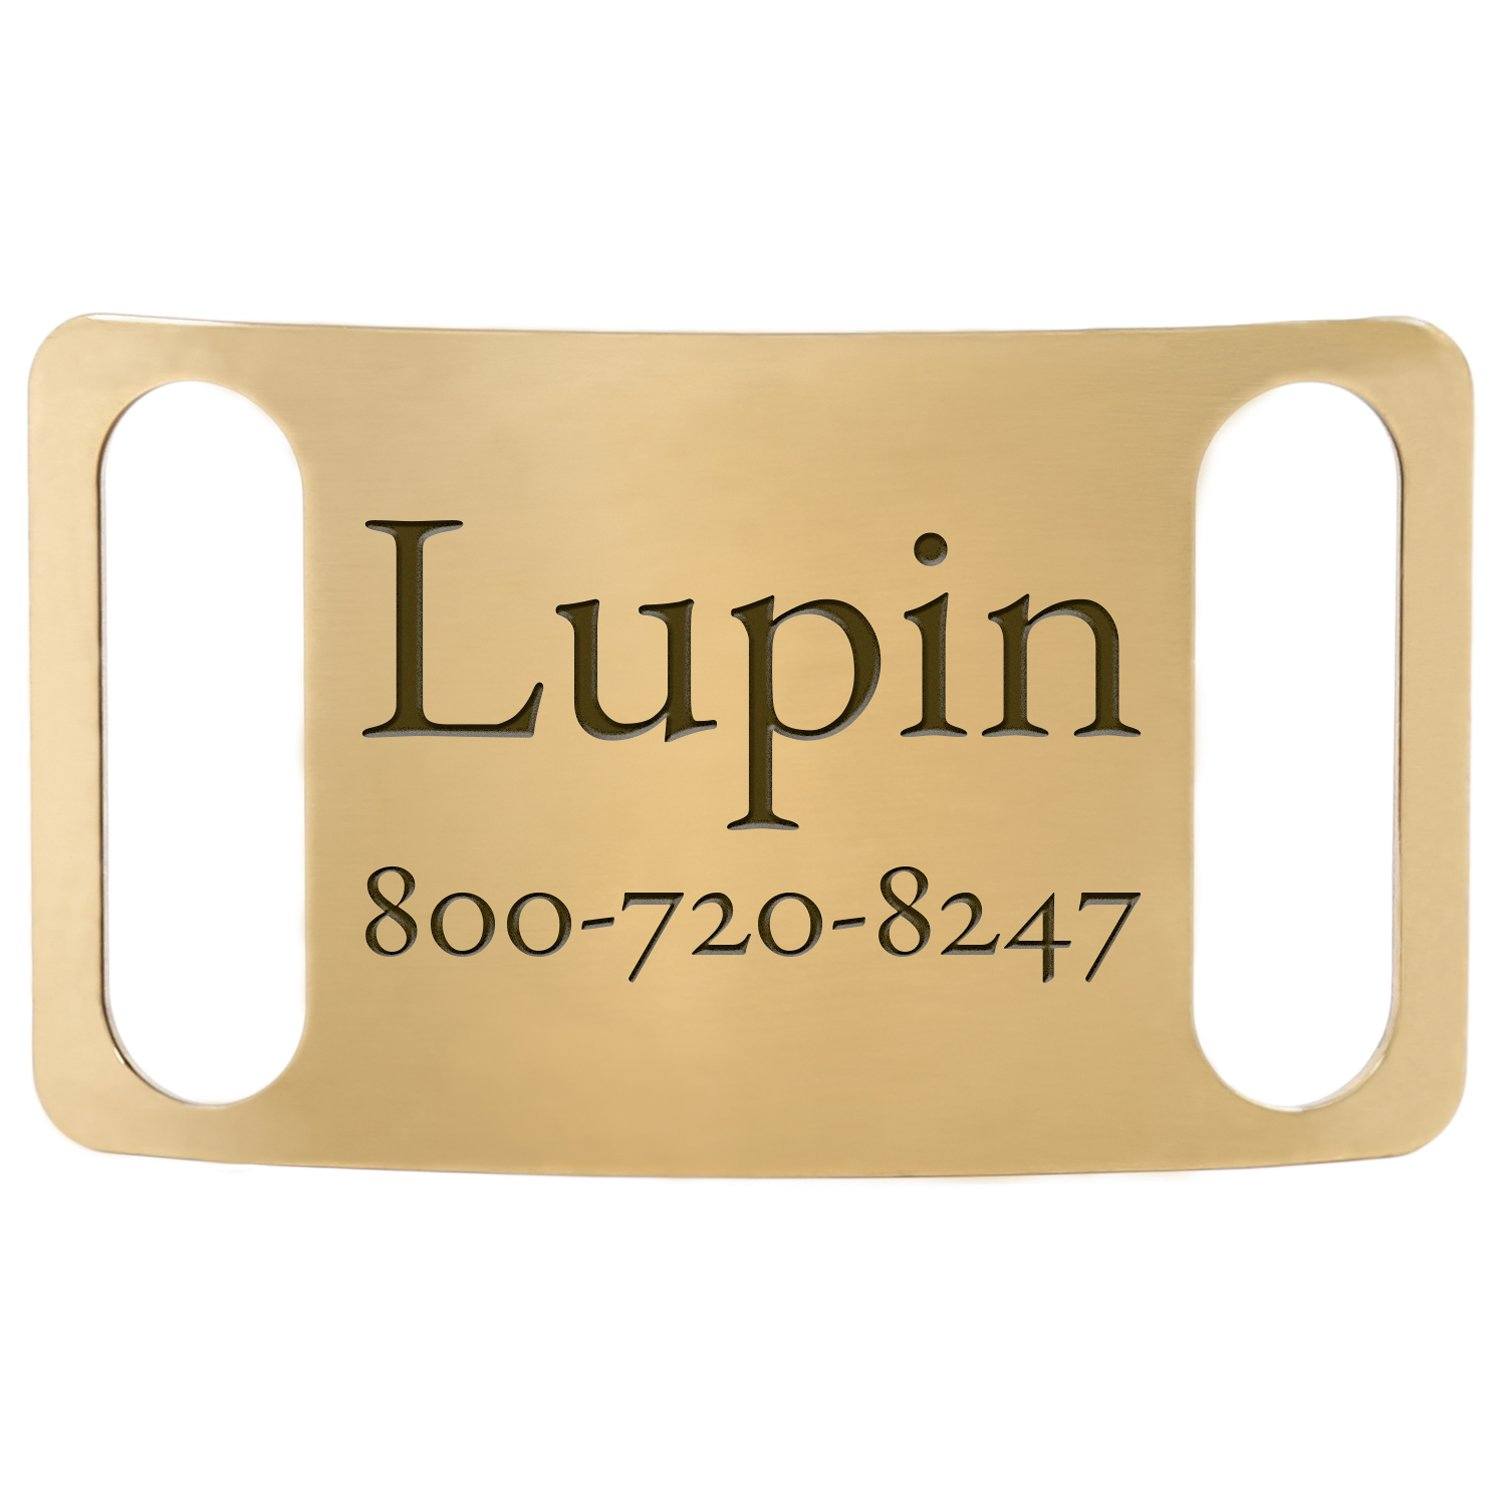 Brass Custom Slide-On Dog ID Tags - Fits 1 Inch Wide Collar - Engraving Guaranteed for Life